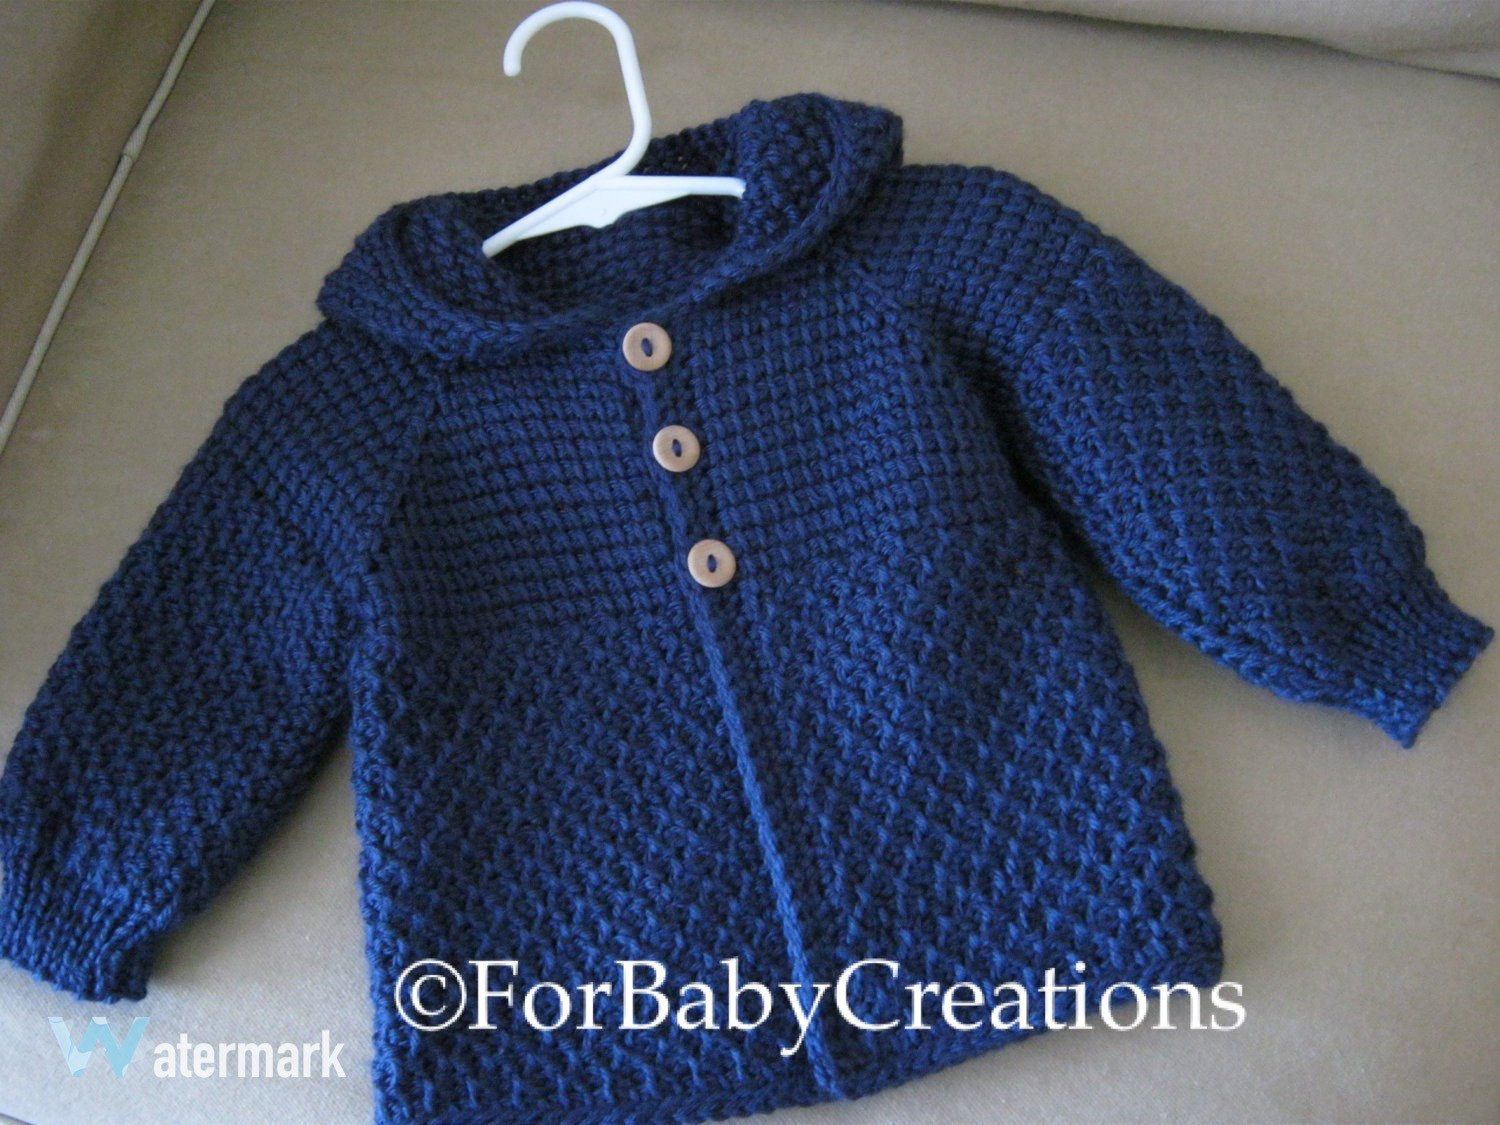 4a9c5cdee5b5 Navy Blue Crochet Baby Boy Sweater with Hood. by ForBabyCreations ...